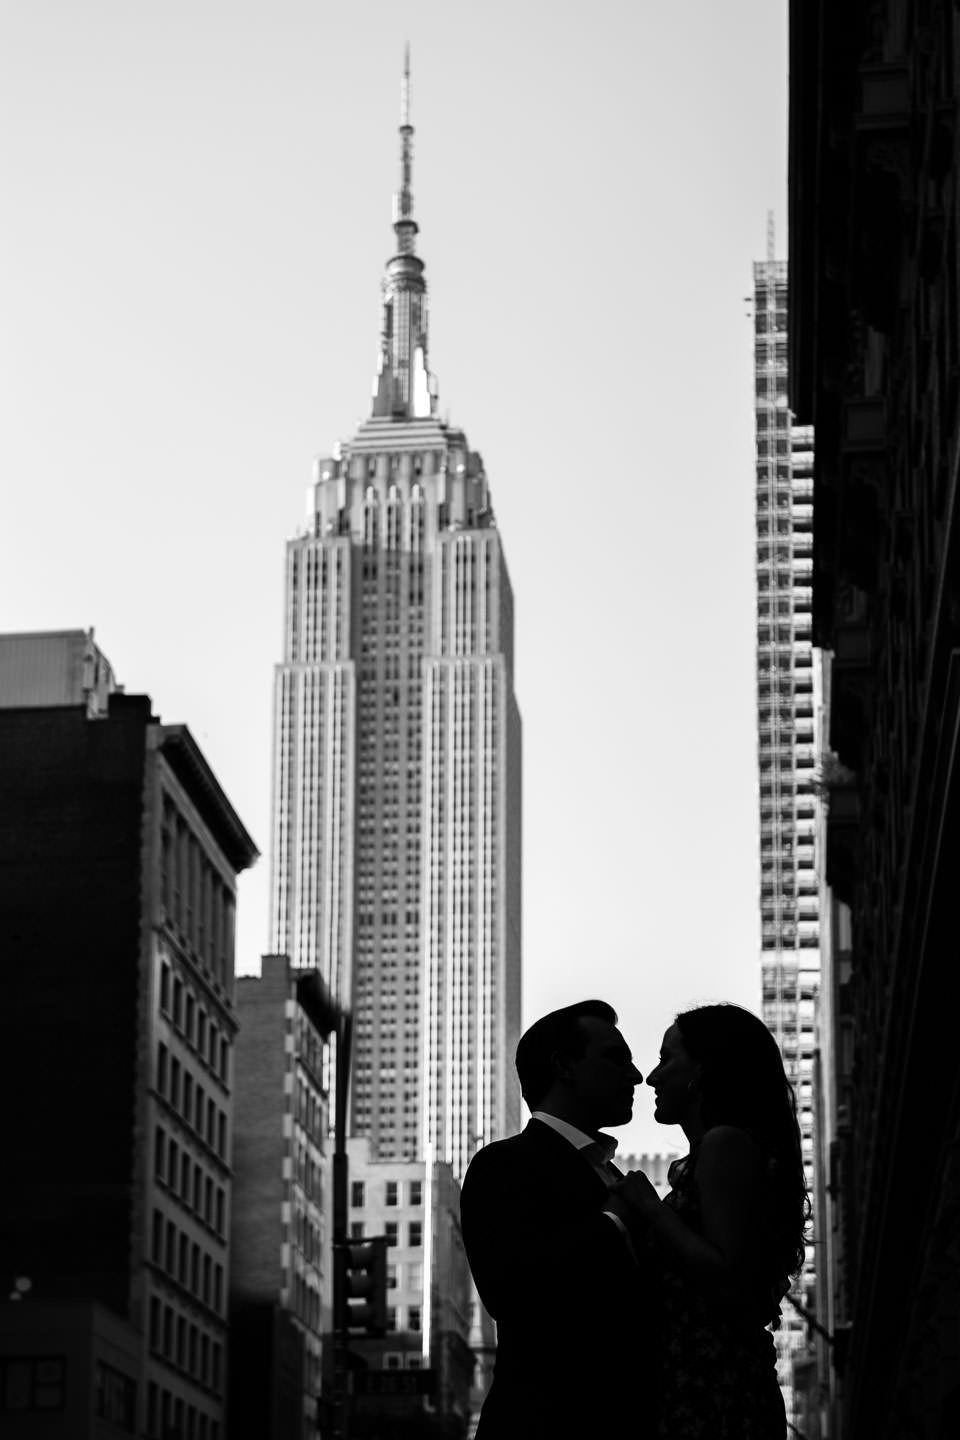 silhouette of couple with empire state building in the background